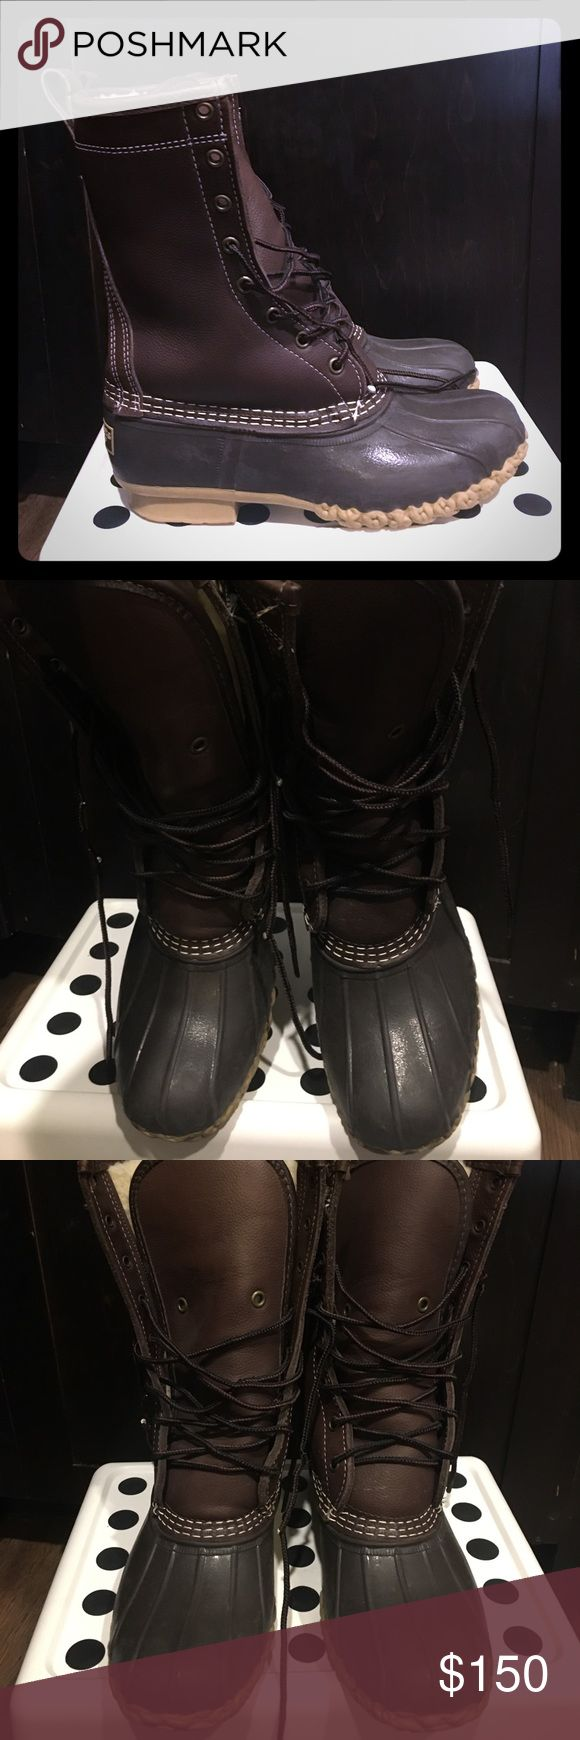 """Barely worn LL Bean boots Women's 10"""" shearling lined boots. Barely worn. Total of 10xs maybe. Great comfy boots that keep the feet warm but no need for them in Texas. May need a new pair of laces but all in all they are in amazing shape! L.L. Bean Shoes Winter & Rain Boots"""